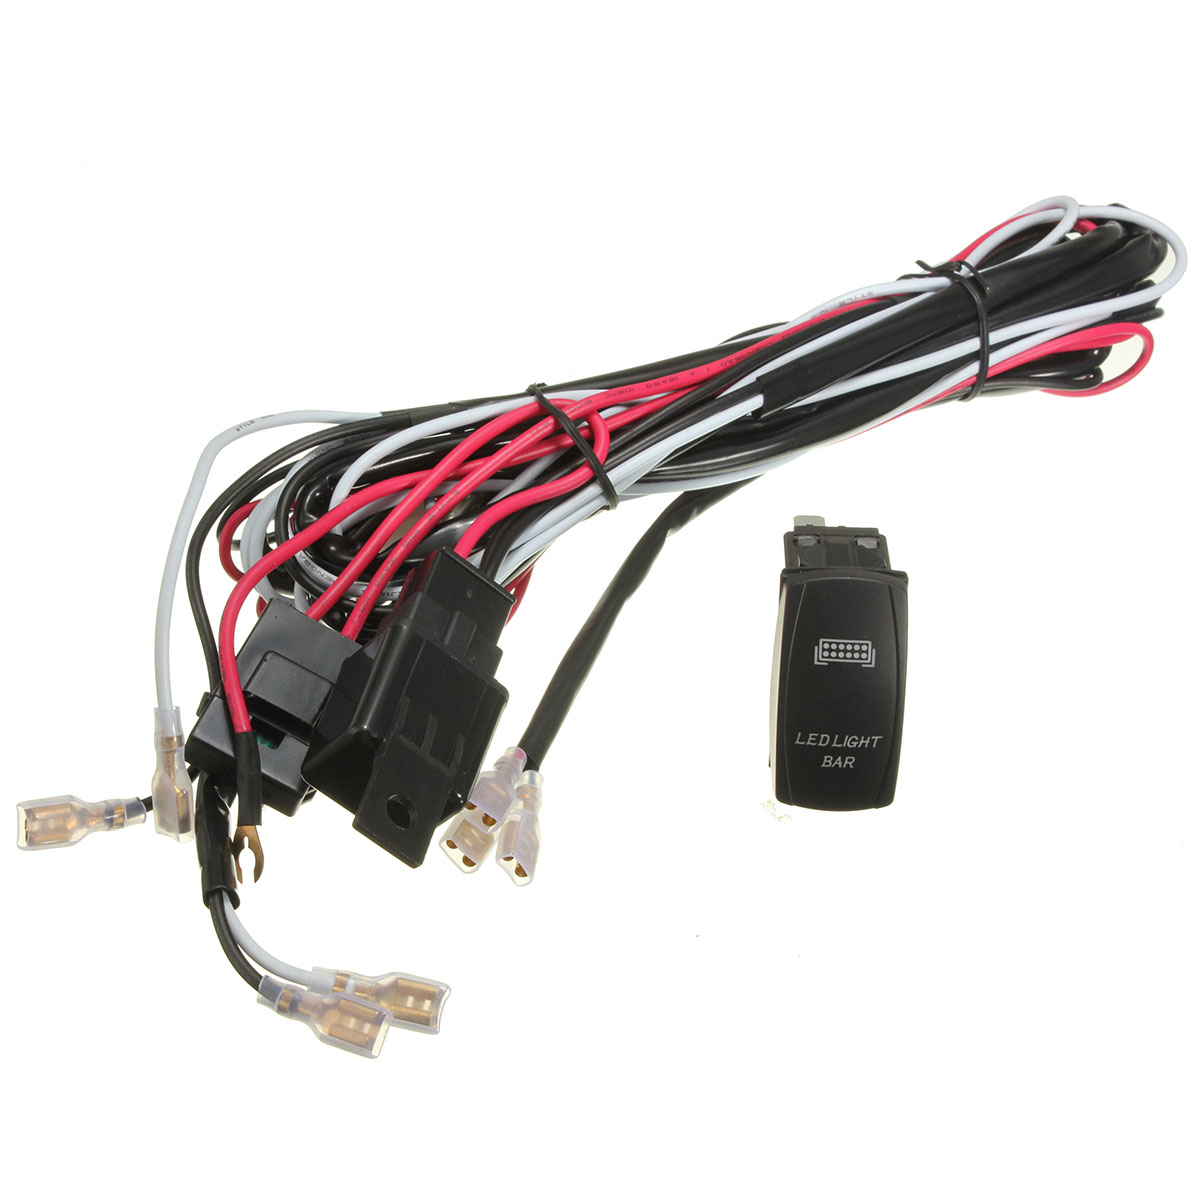 atv/jeep led light bar wiring harness 12v 40a relay on/off ... 12 volt atv winch contactor wiring diagram 12 volt atv wire harness